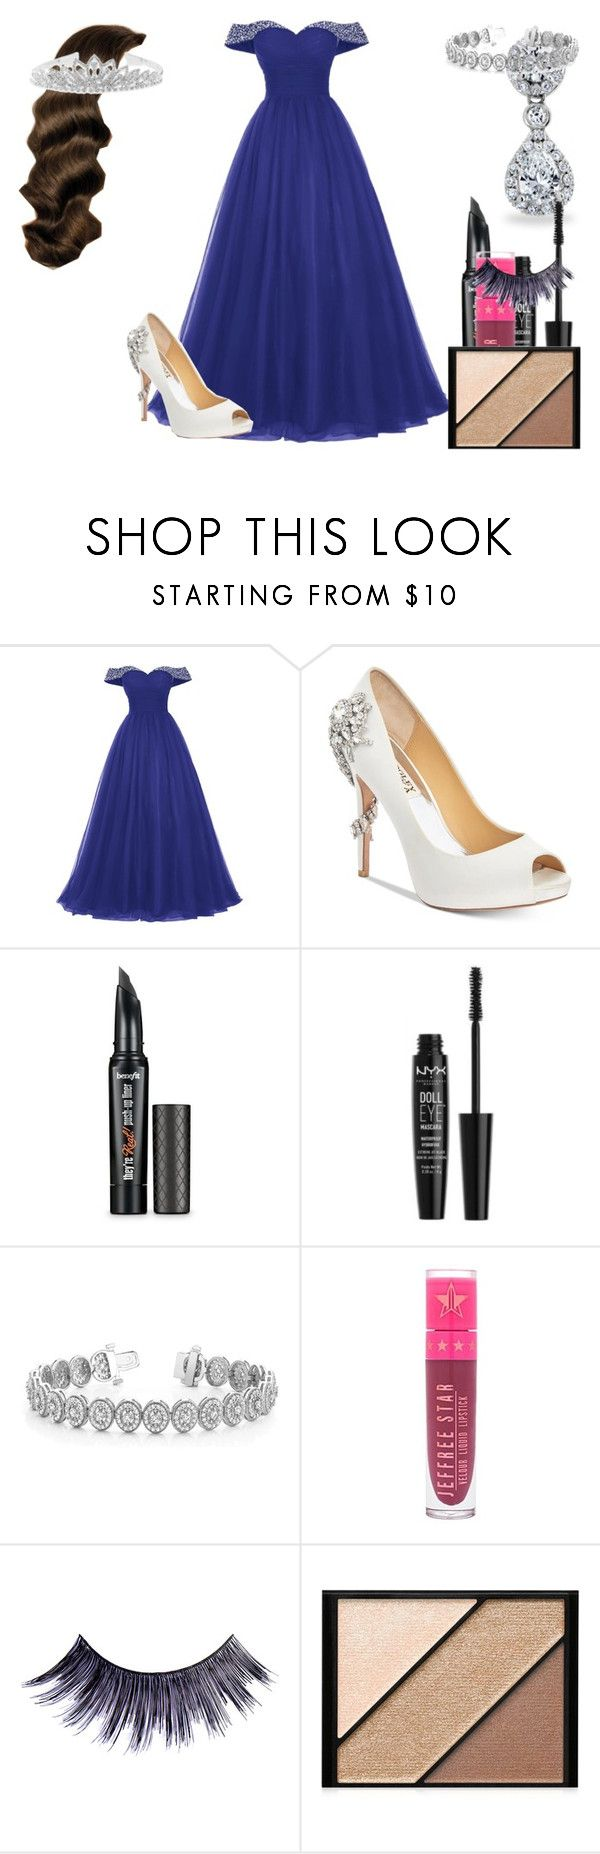 """""""Lillian Lockstar In """"Welcome To The Dressing Room"""" Music Video"""" by shestheman01 on Polyvore featuring Badgley Mischka, Benefit, Allurez, Jeffree Star, Manic Panic NYC, Elizabeth Arden and BillyTheTree"""